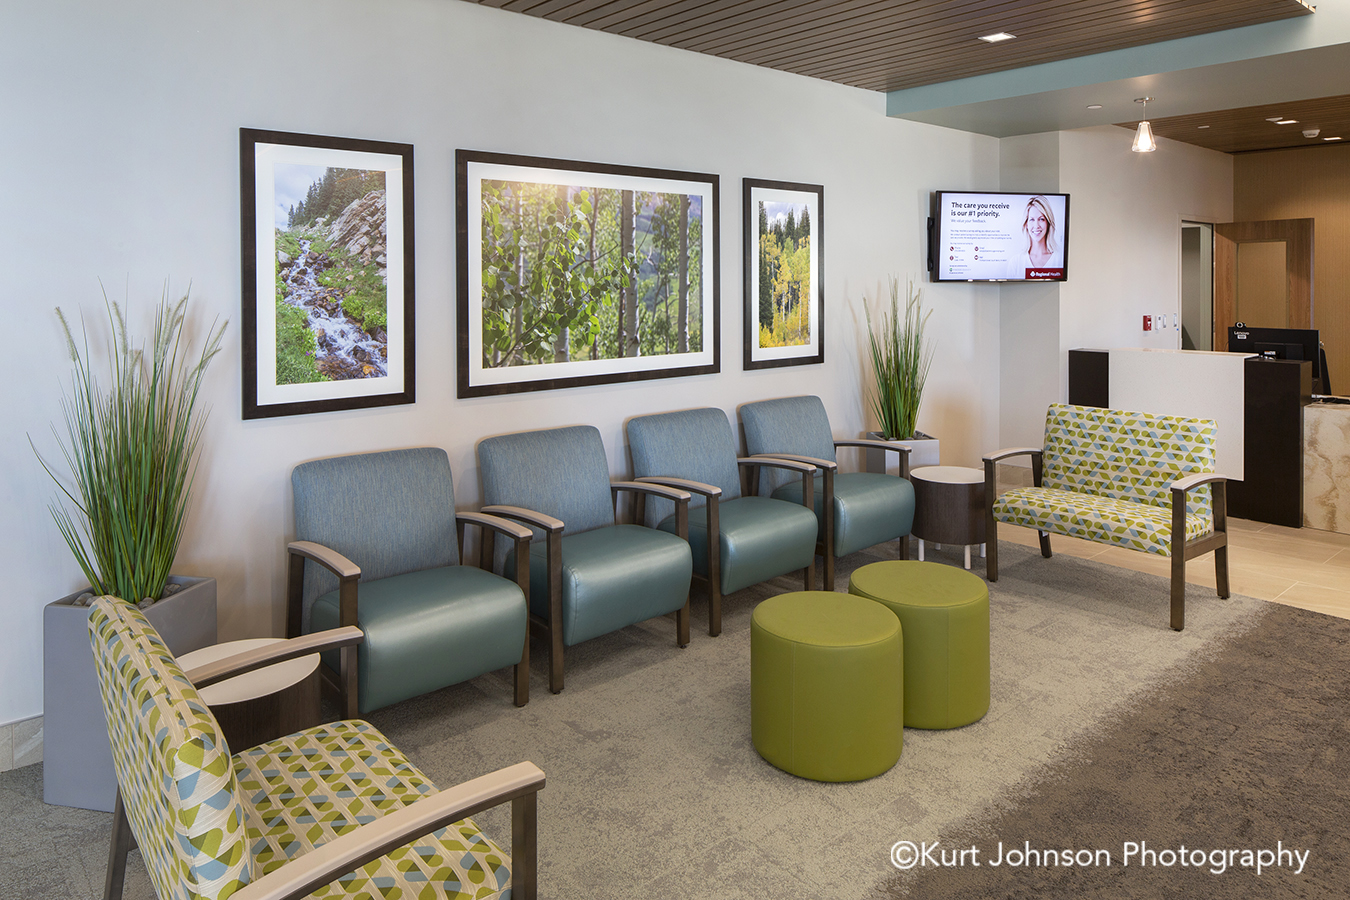 Regional Health Medical Center Advanced Orthopedic and Sports Medicine Institute Rapid City South Dakota framed healthcare art green tree trees leaves blue sky grass grasses install installation waiting room lobby seating chairs